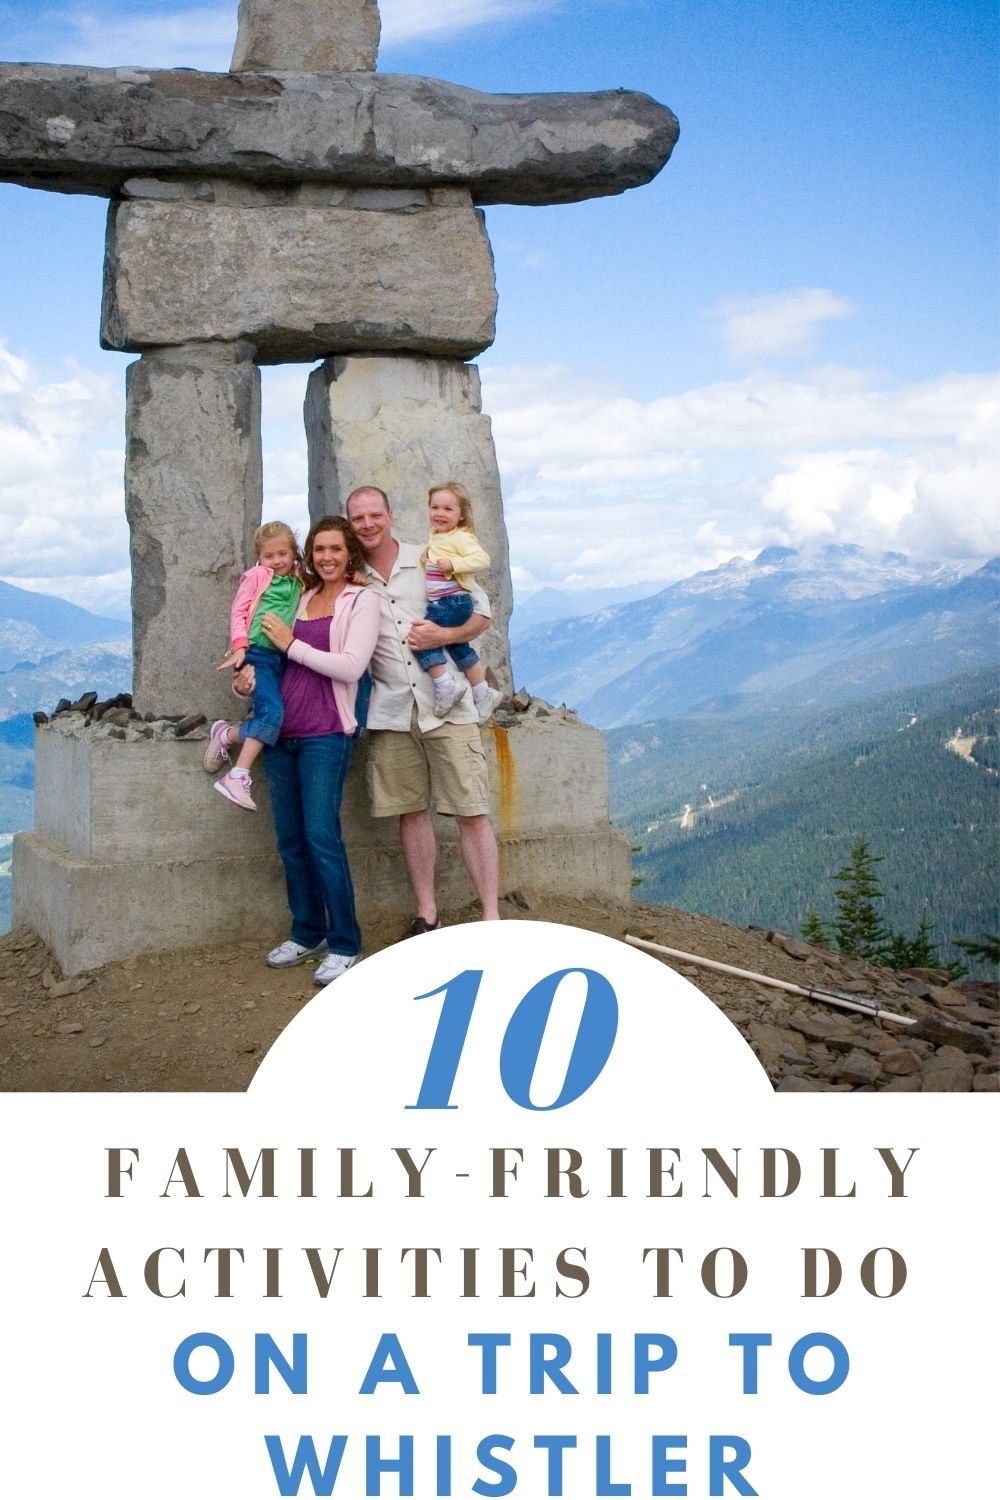 10 Family-Friendly Activities To Do On A Trip To Whistler